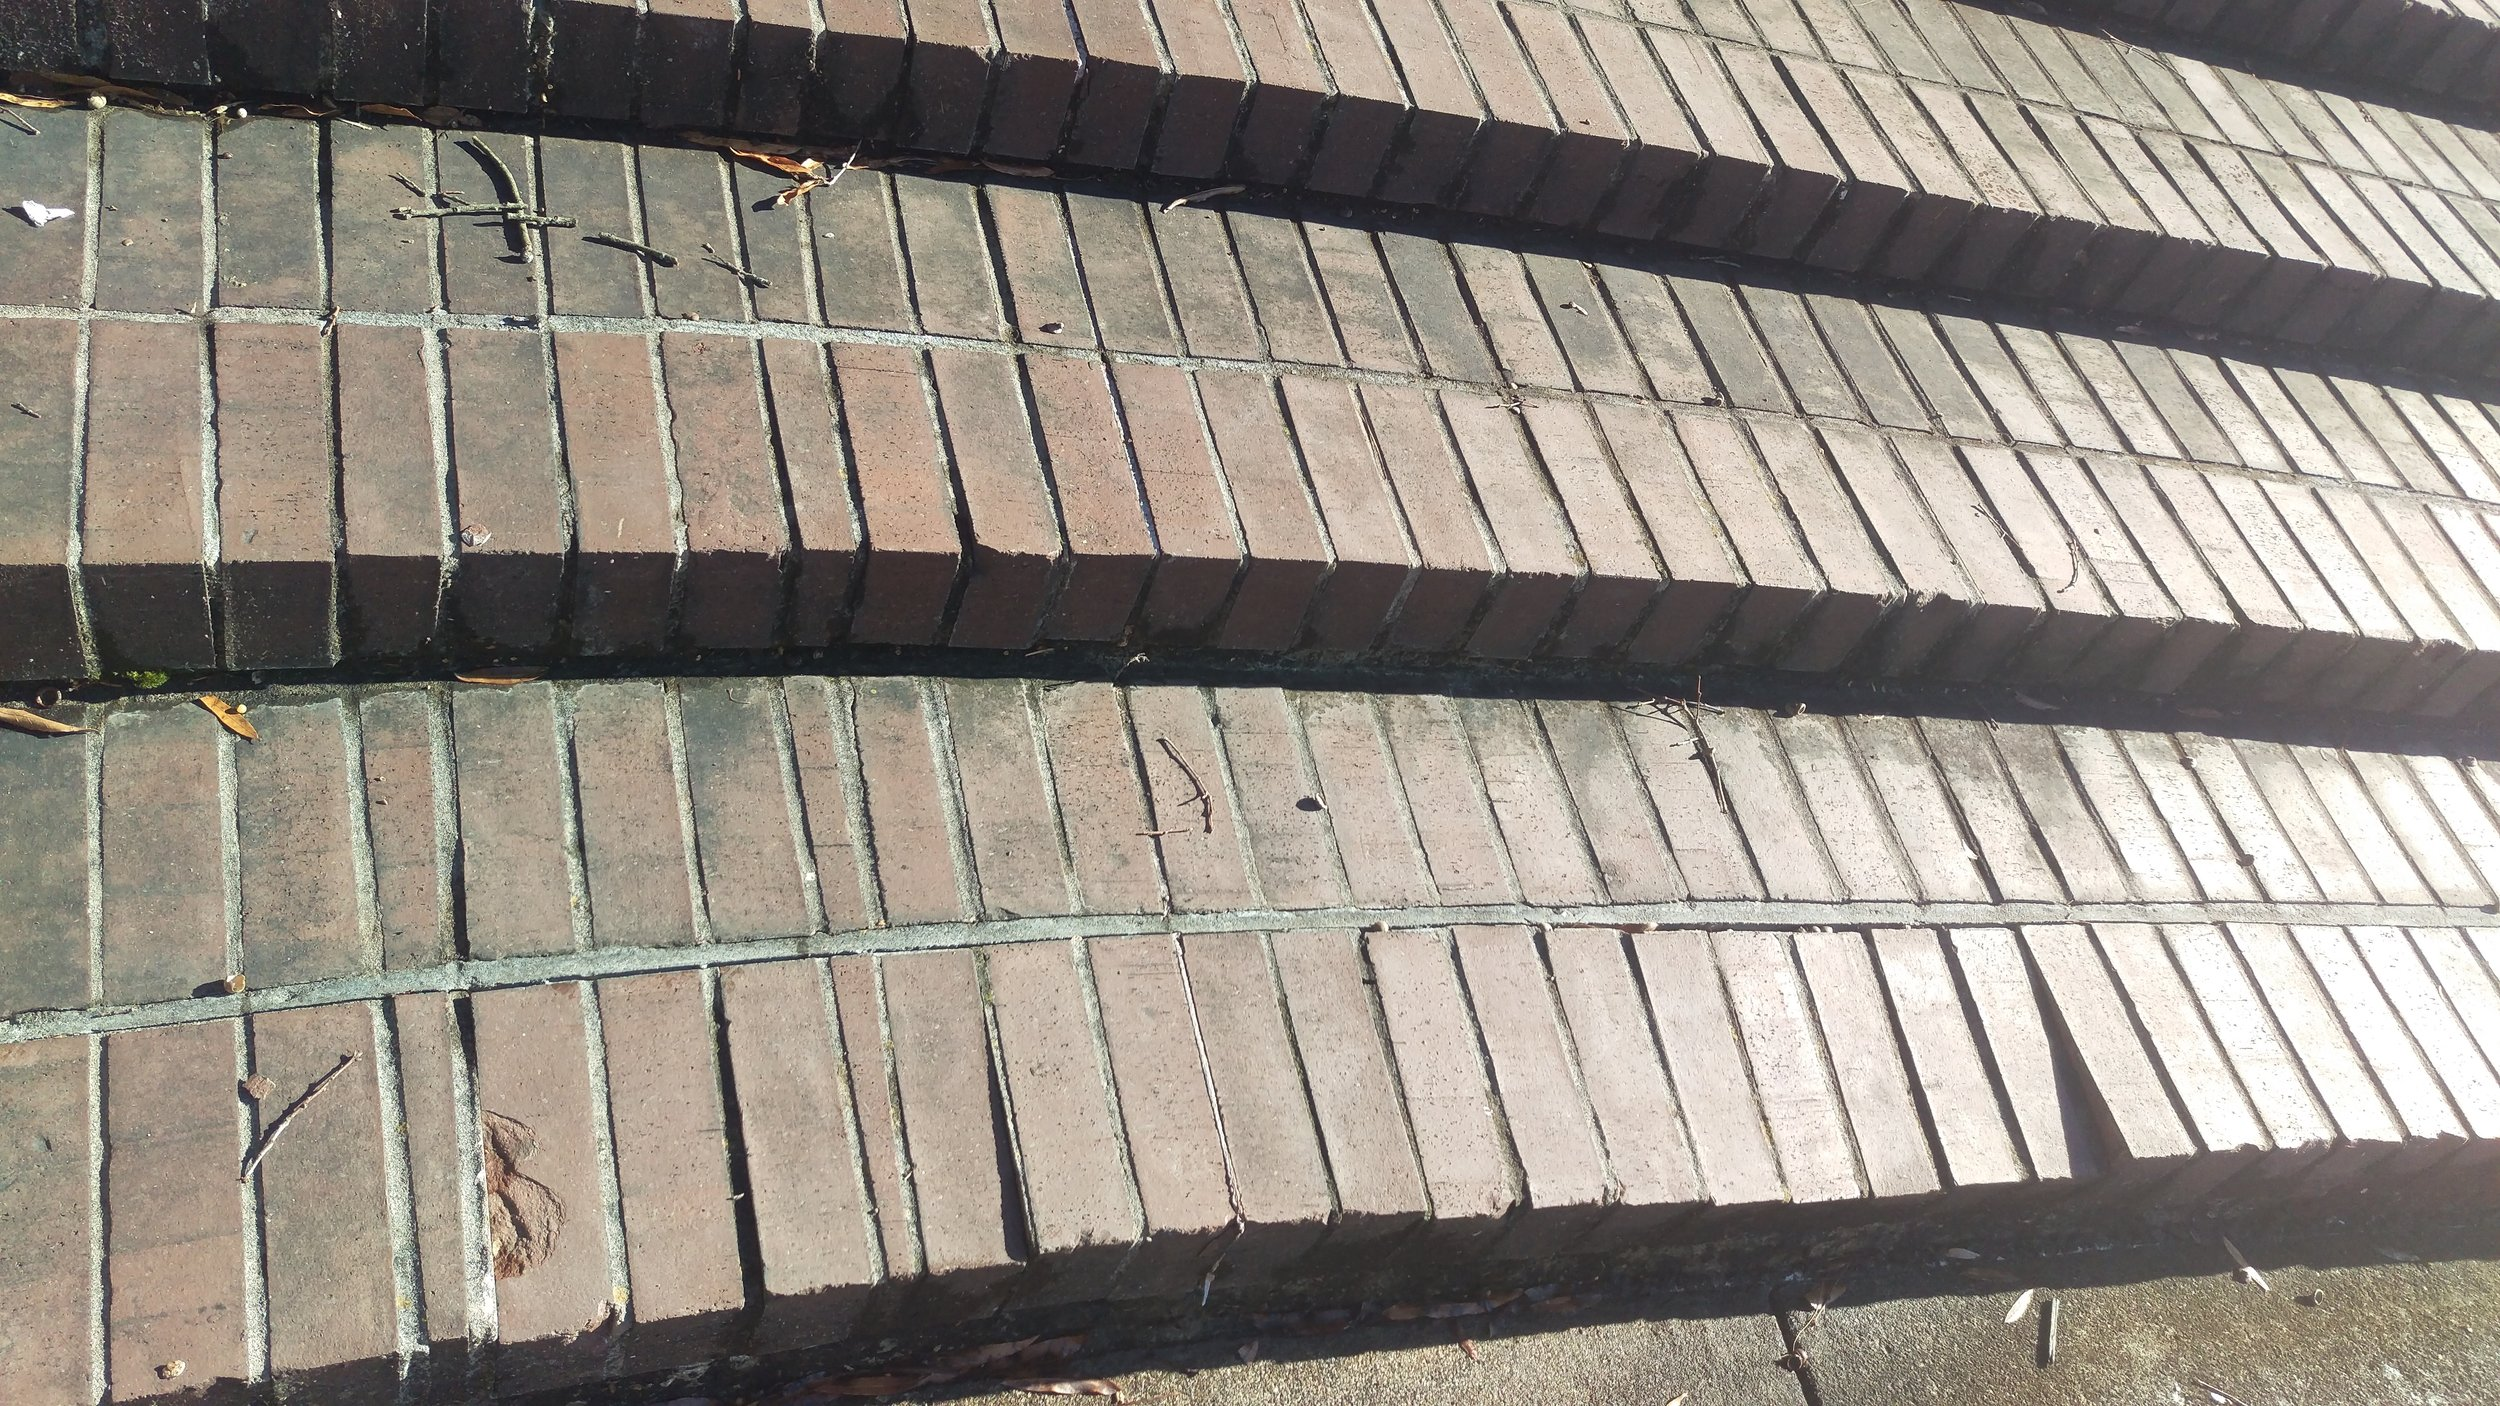 Deteriorating brick steps at the City-County Building Entry Plaza